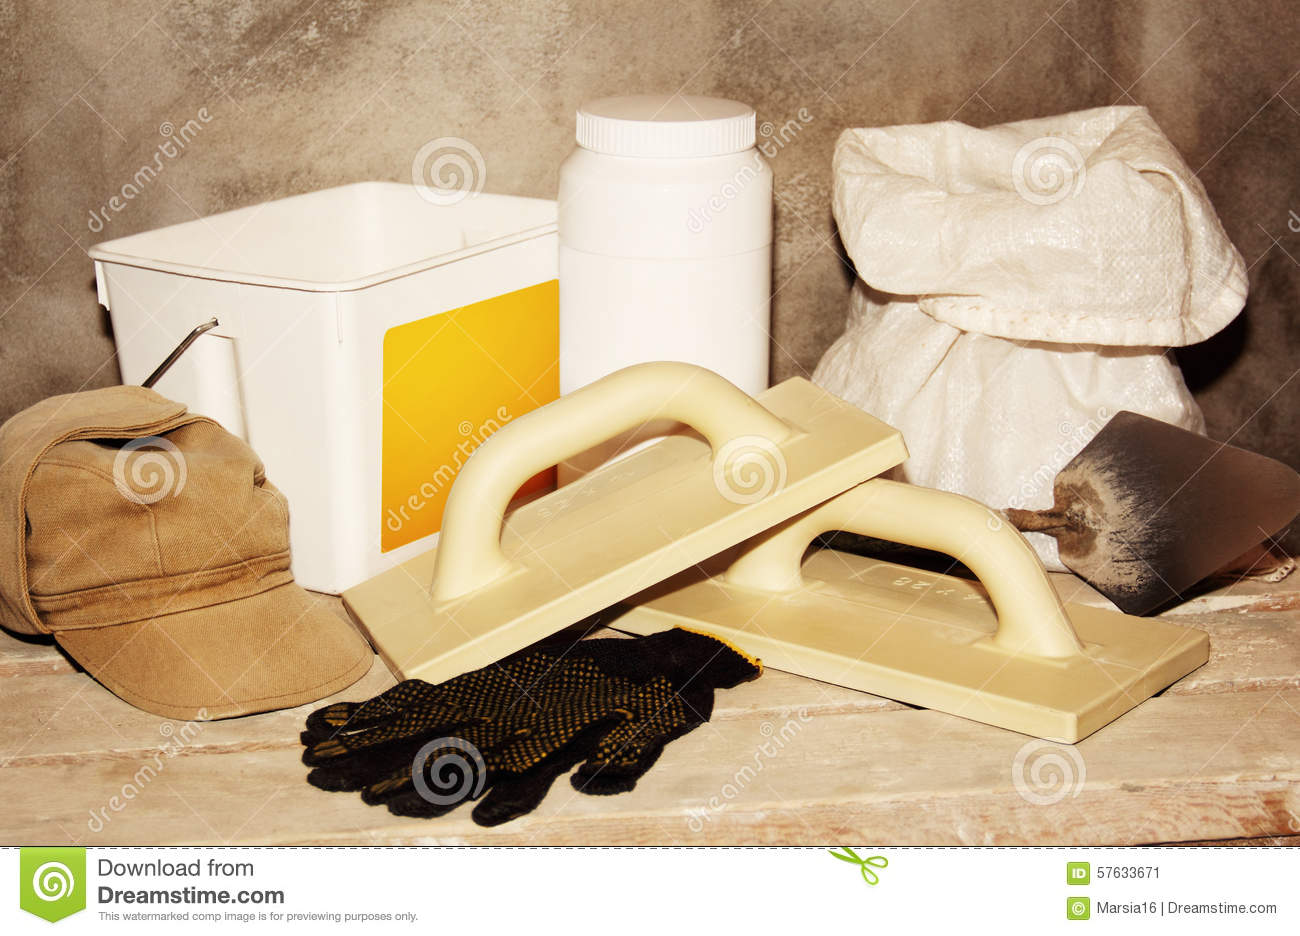 Tools and building materials for repairs